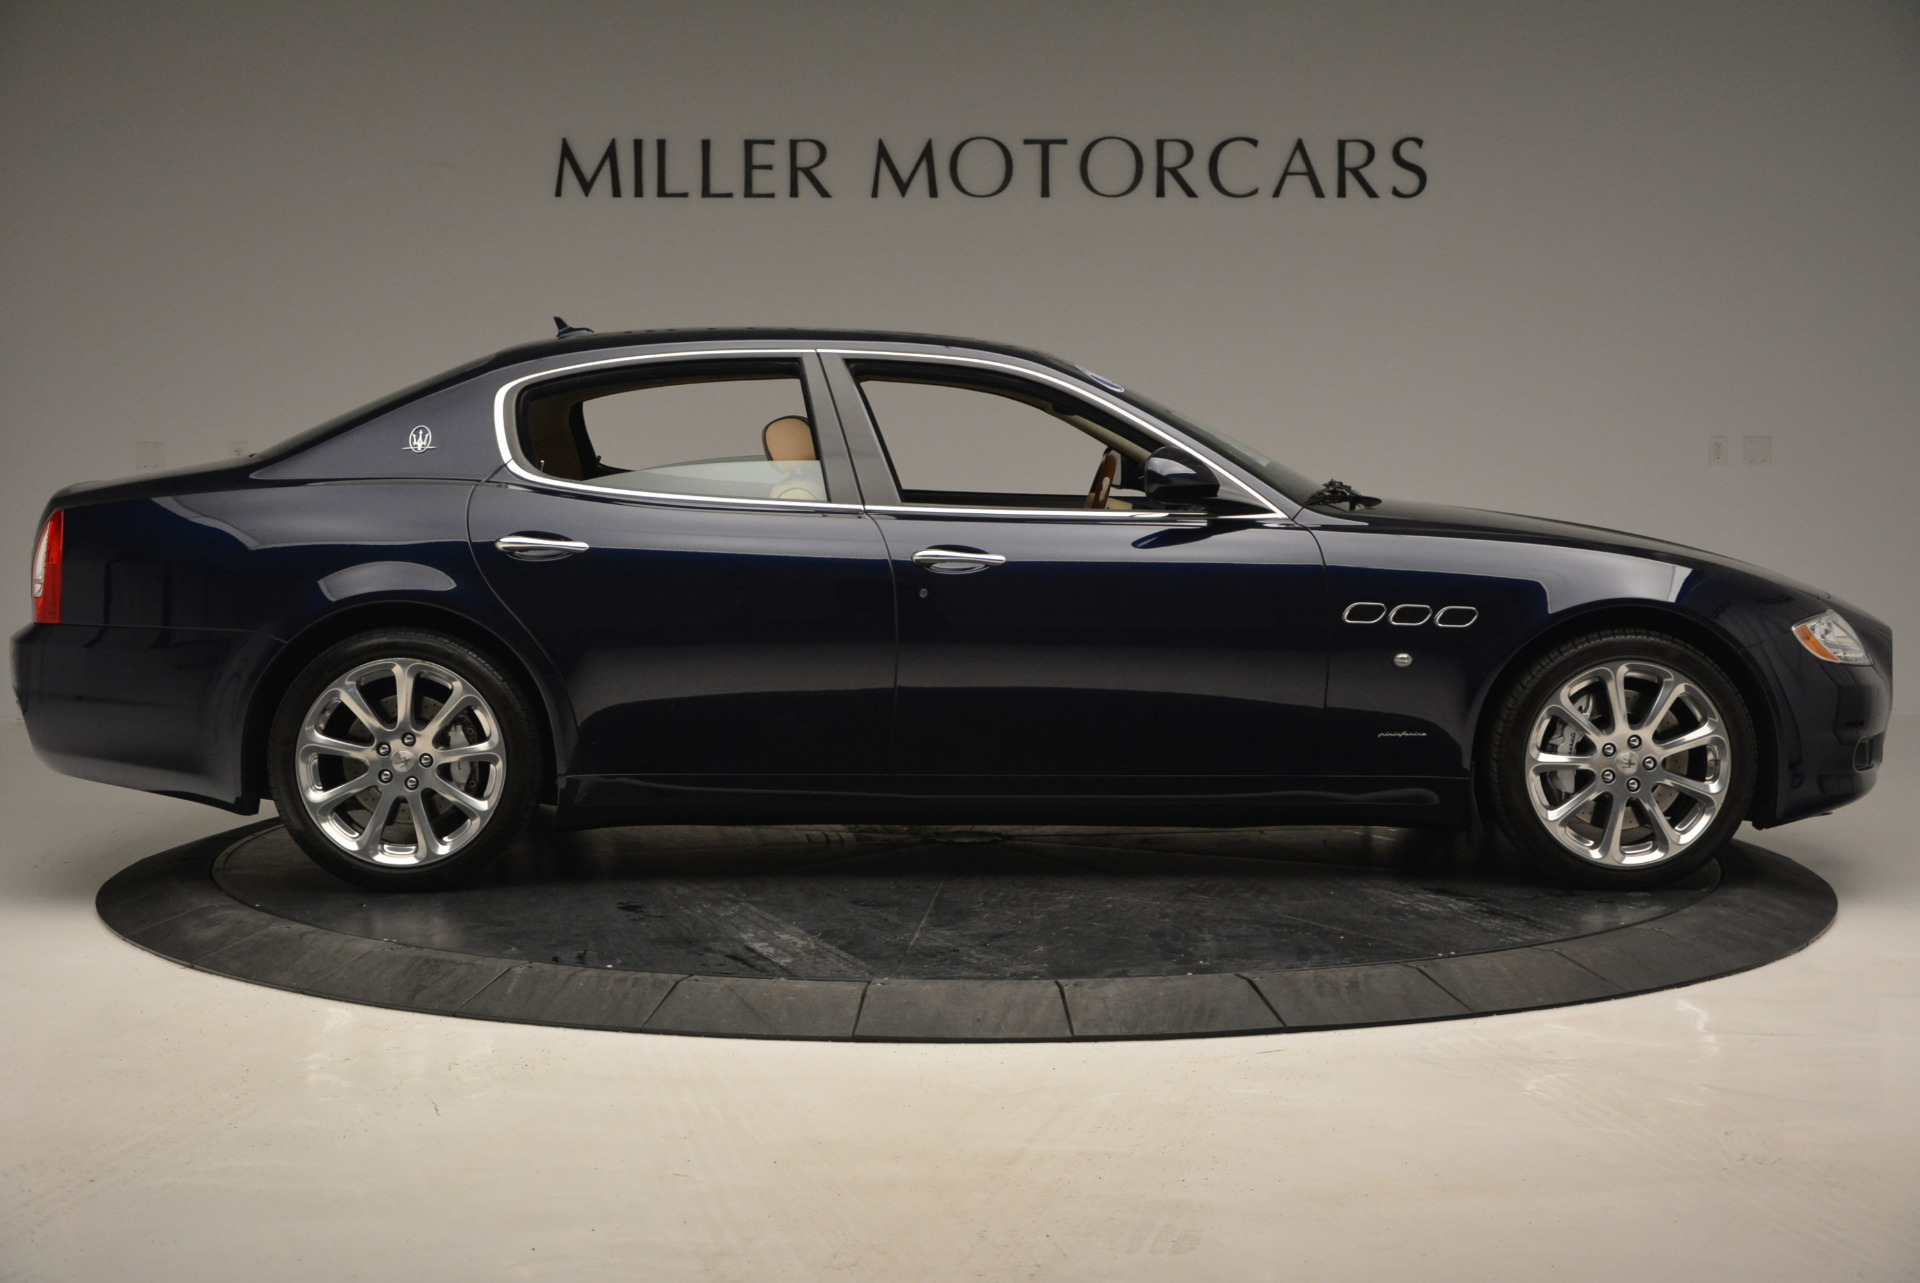 Used 2010 Maserati Quattroporte S For Sale In Westport, CT 795_p9